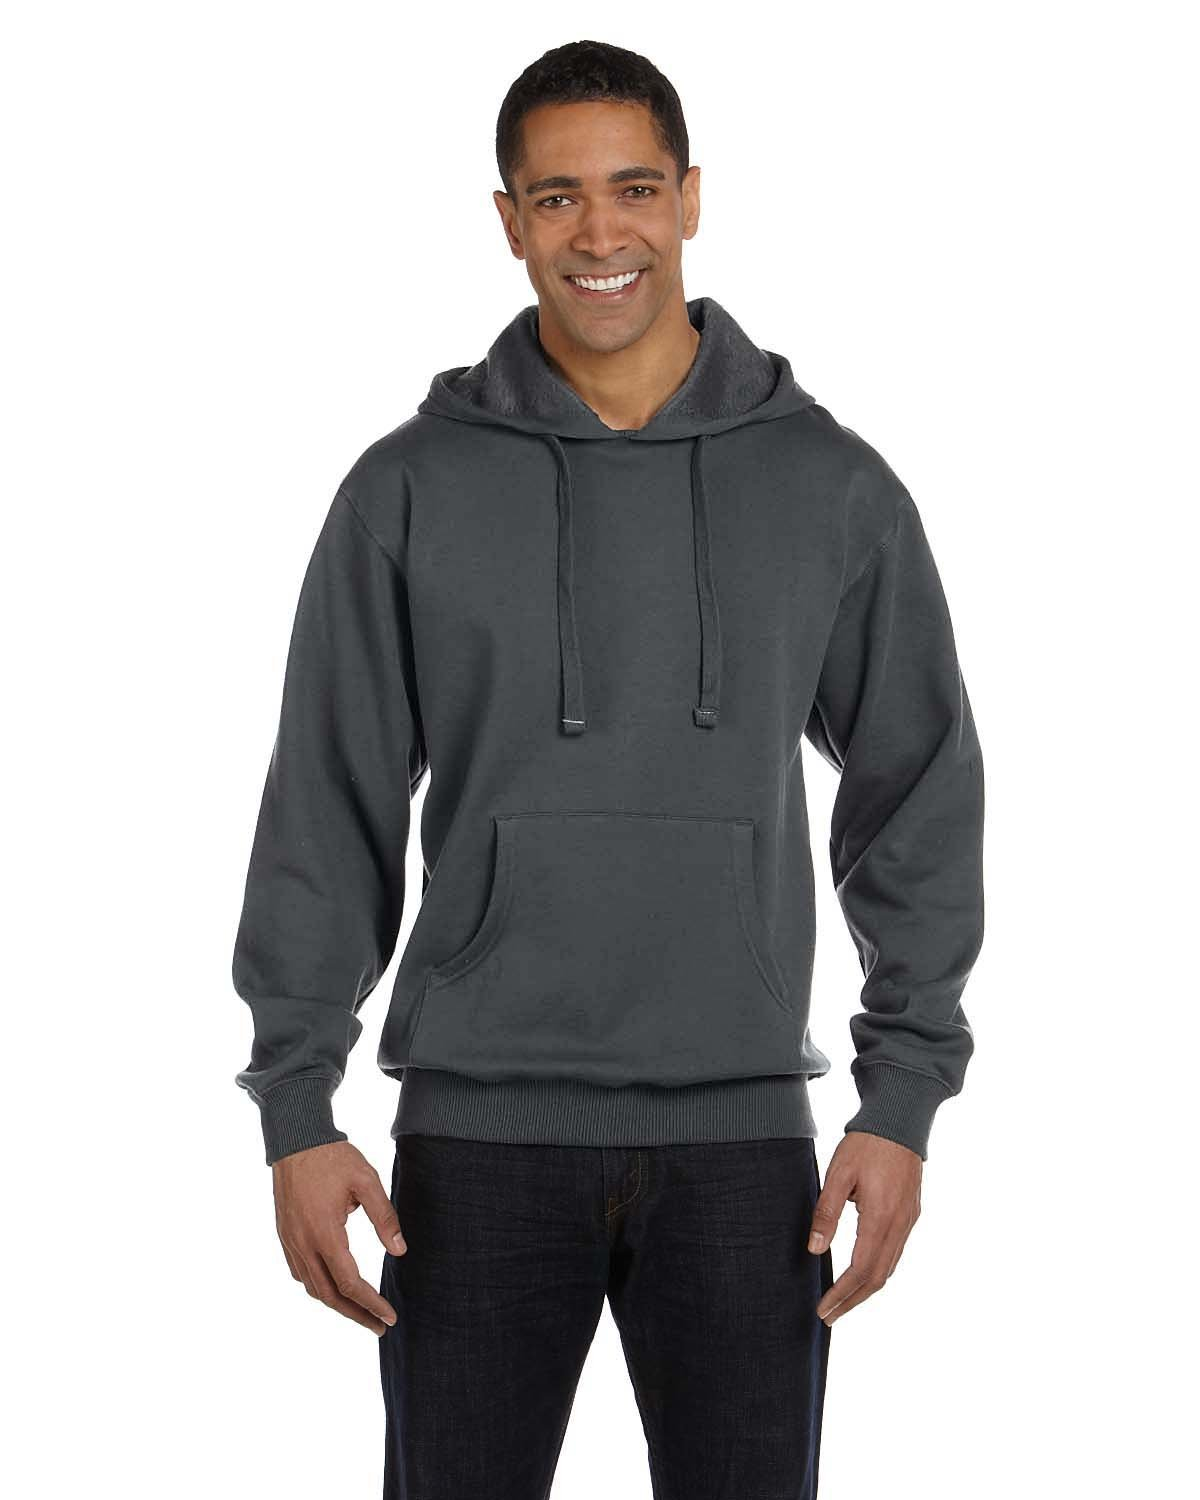 econscious Adult Organic/Recycled Pullover Hooded Sweatshirt CHARCOAL